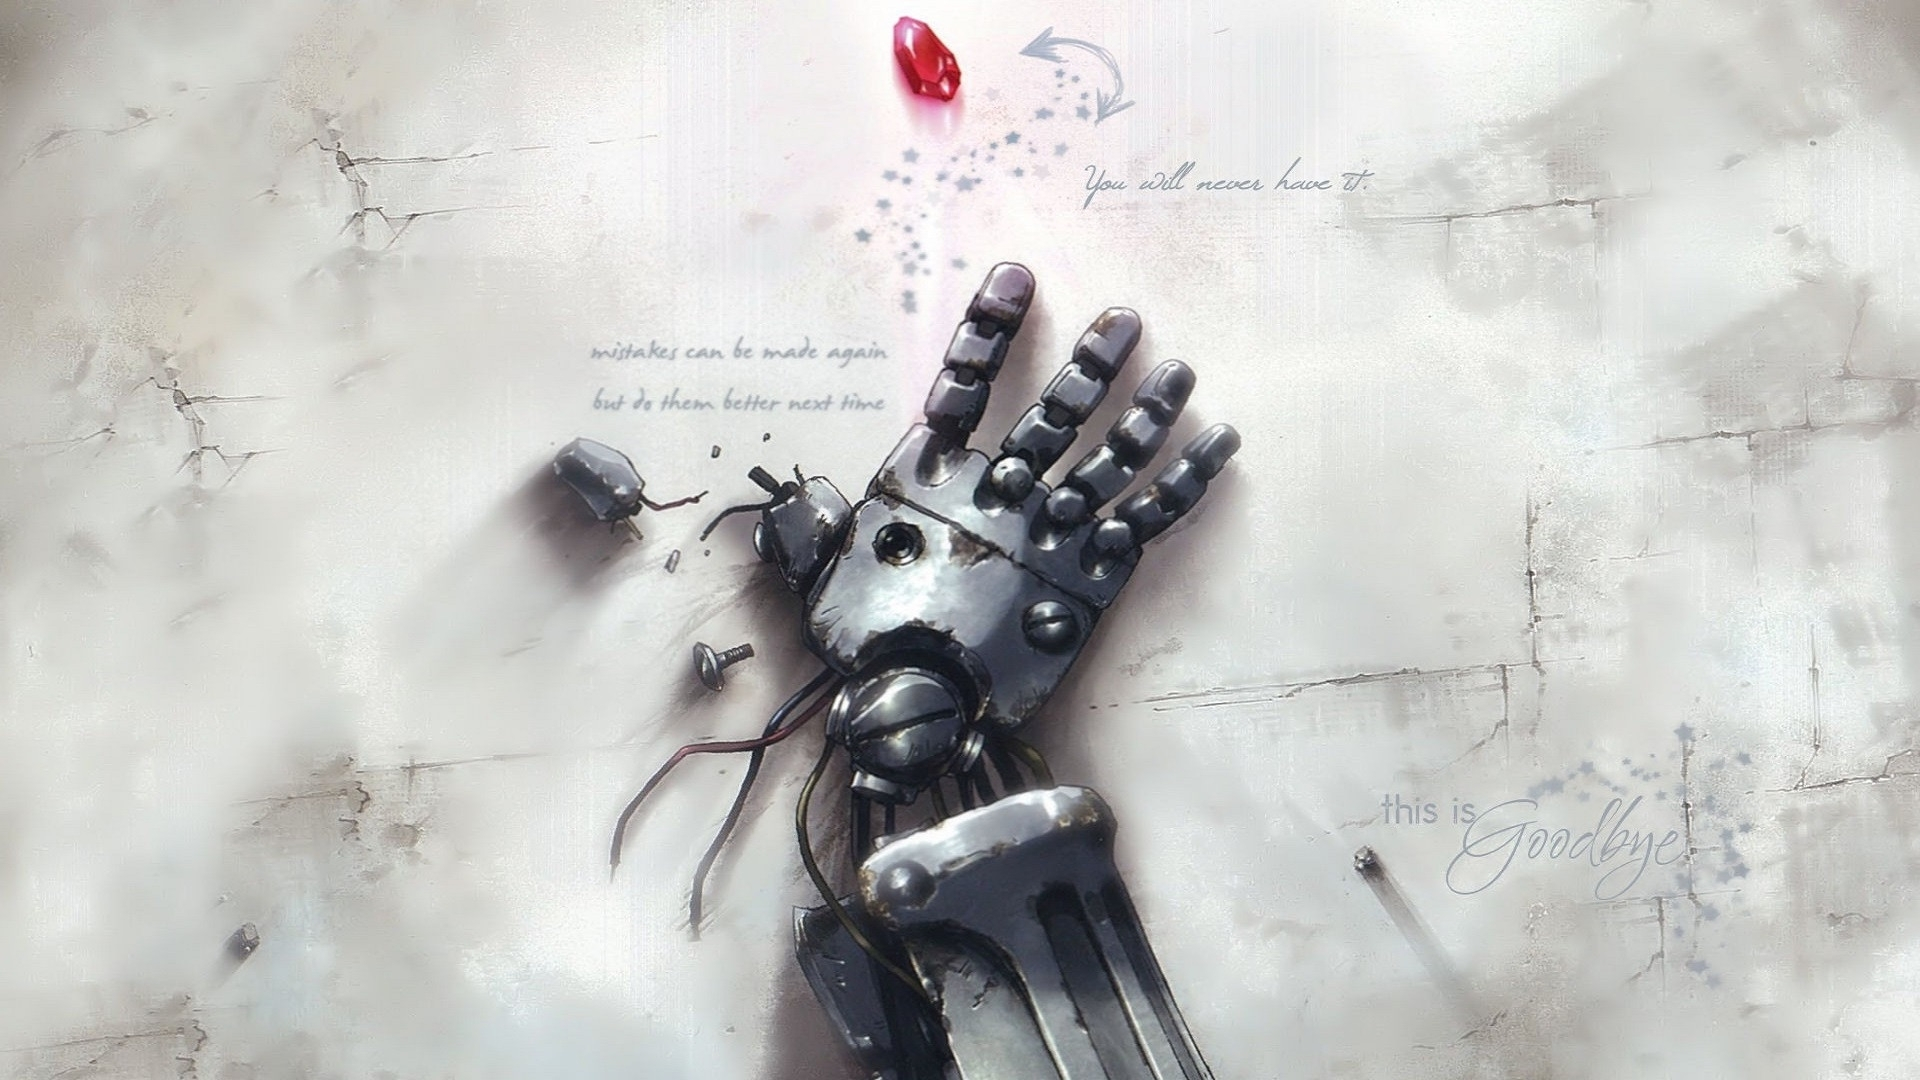 fullmetal alchemist brotherhood, wallpaper - zerochan anime image board